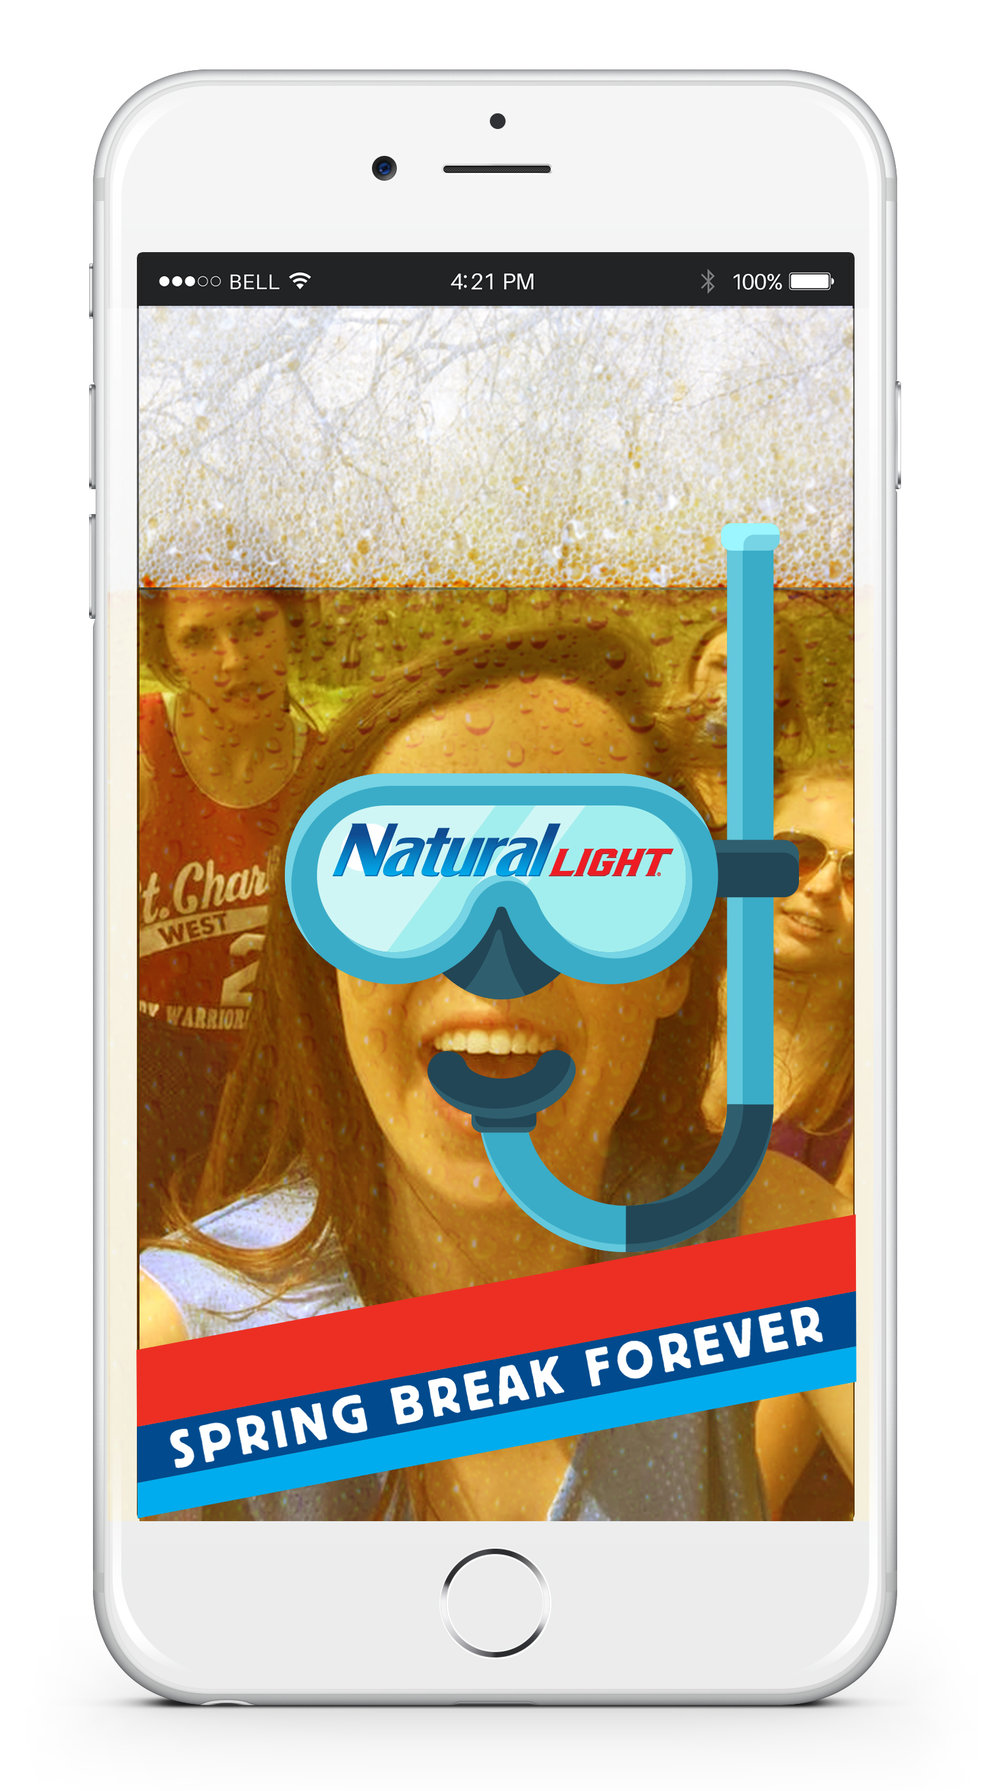 Snap Chat filter for an experiential event hosted by Natural Light